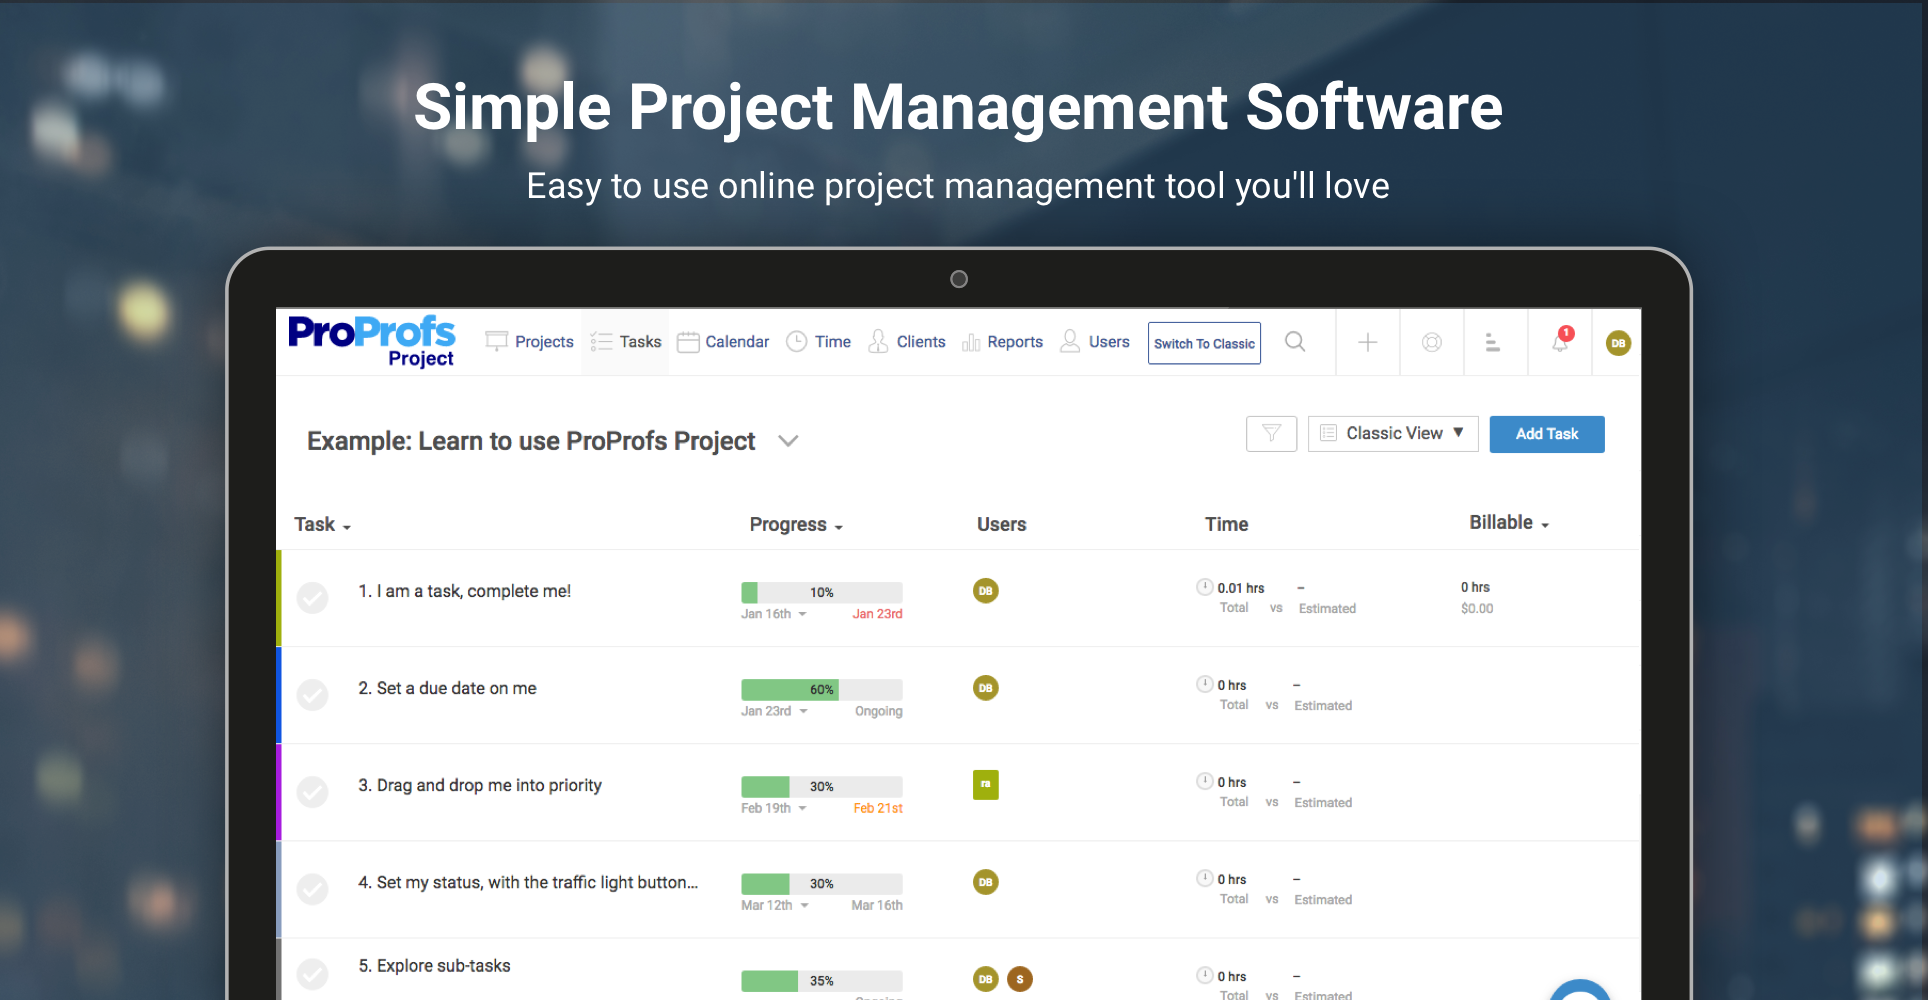 Simple Project Management Software Proprofs Project